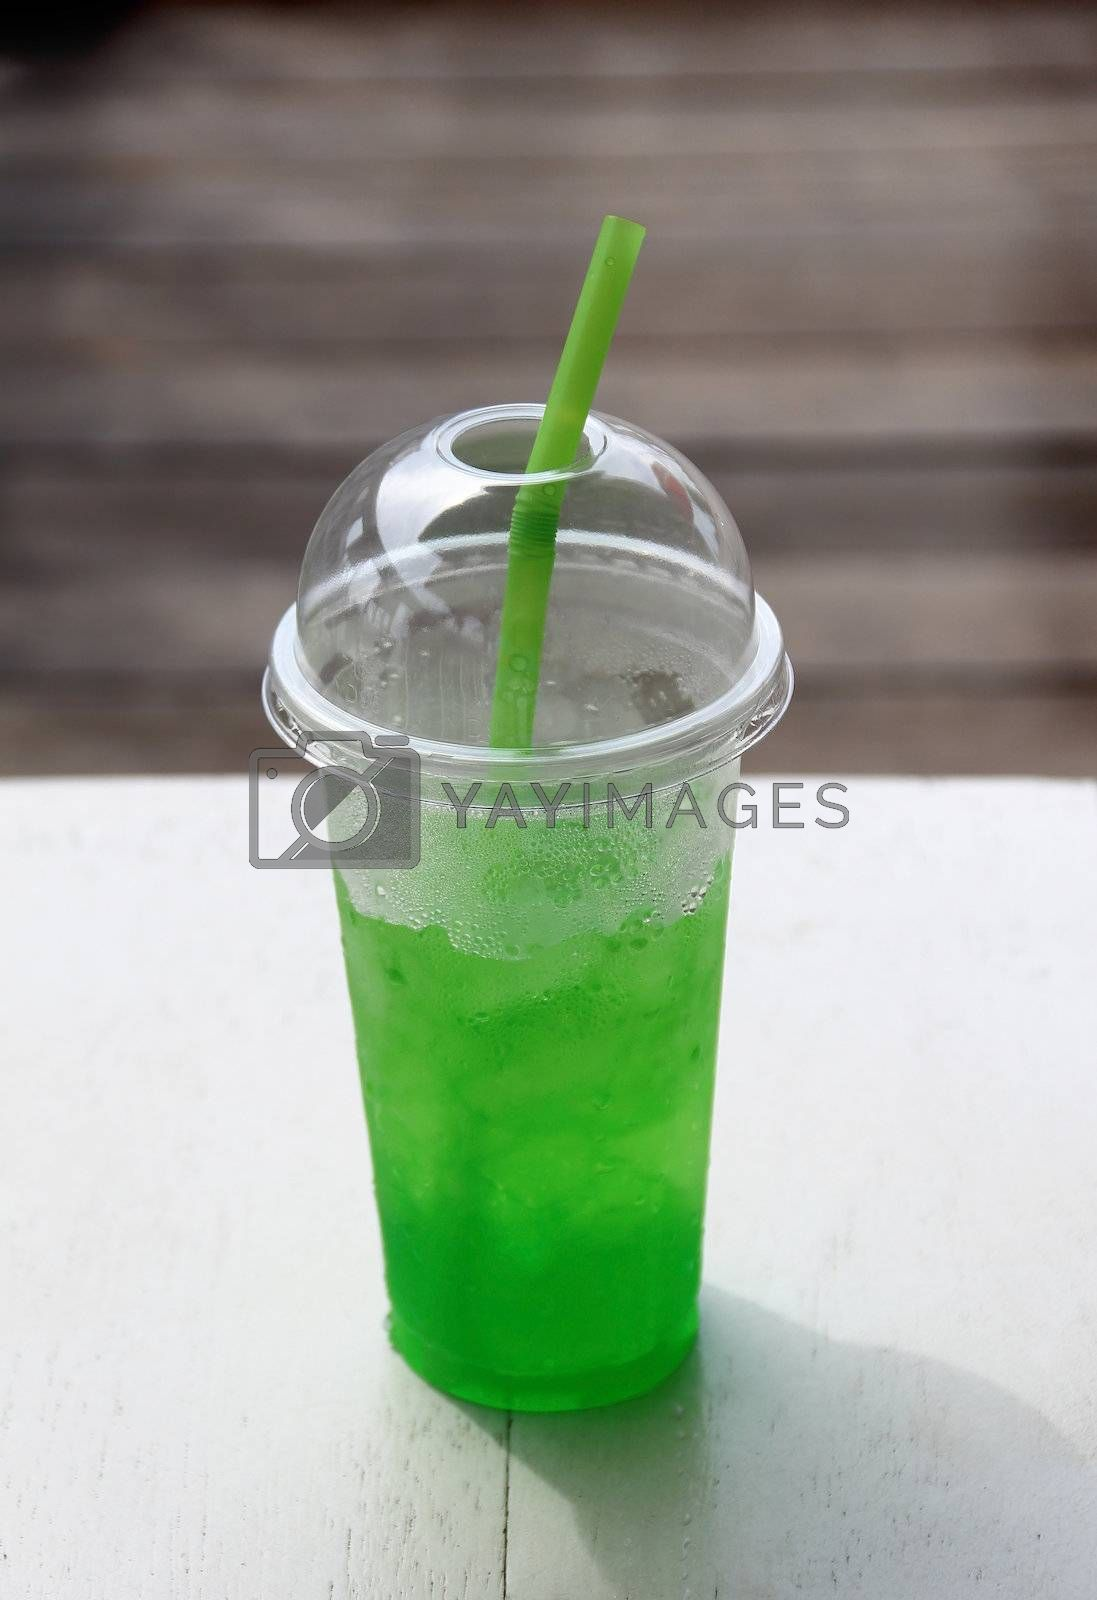 Soft drink in plastic cup with green straw